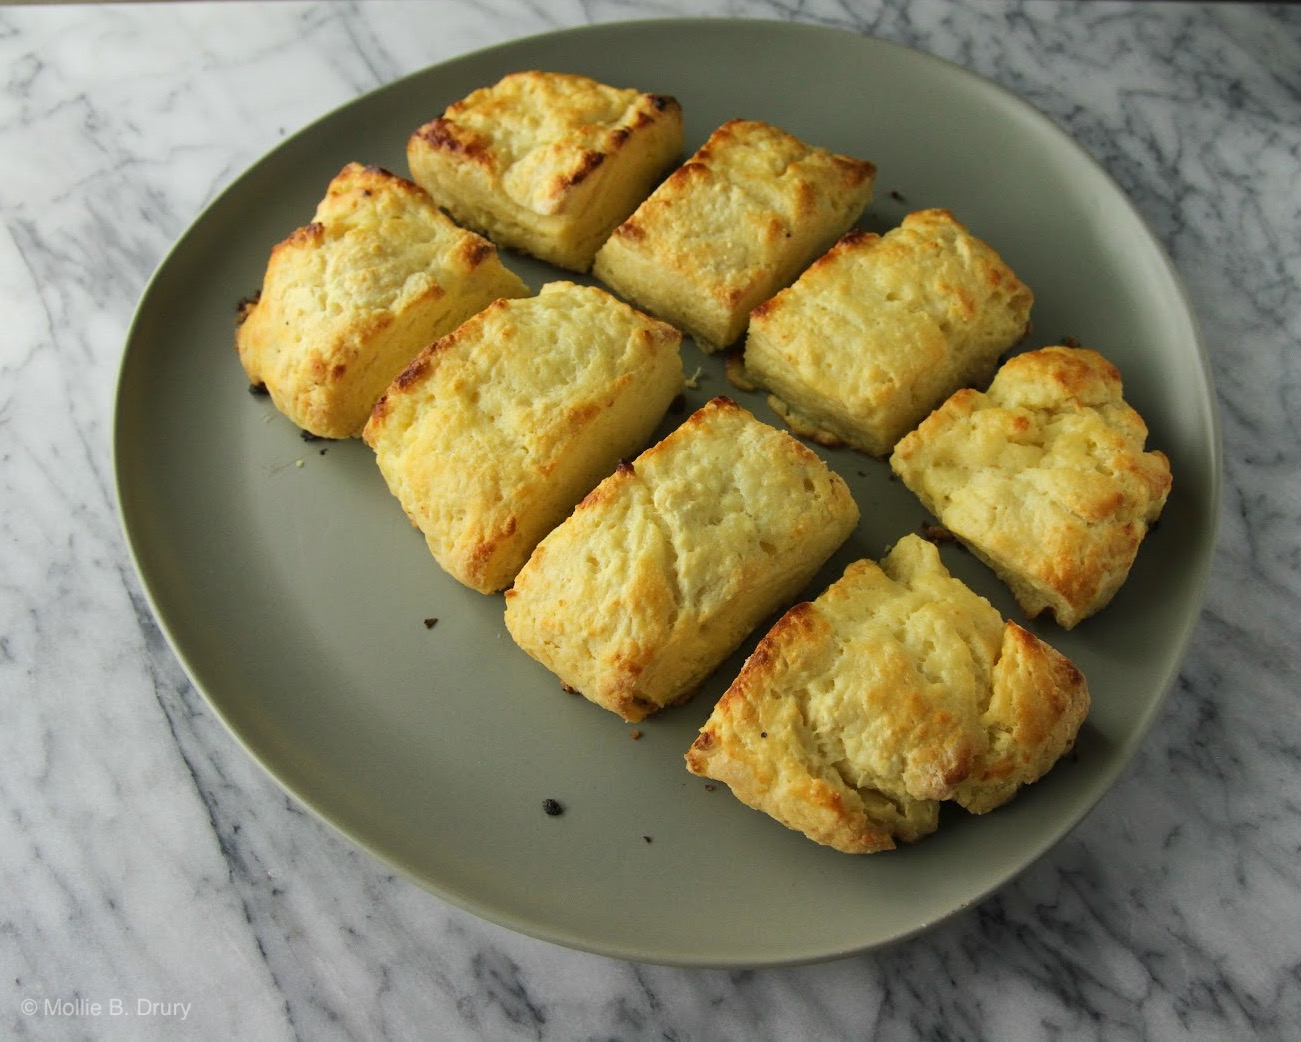 Buttermilk biscuits I made the morning we decided to move! They were stellar!